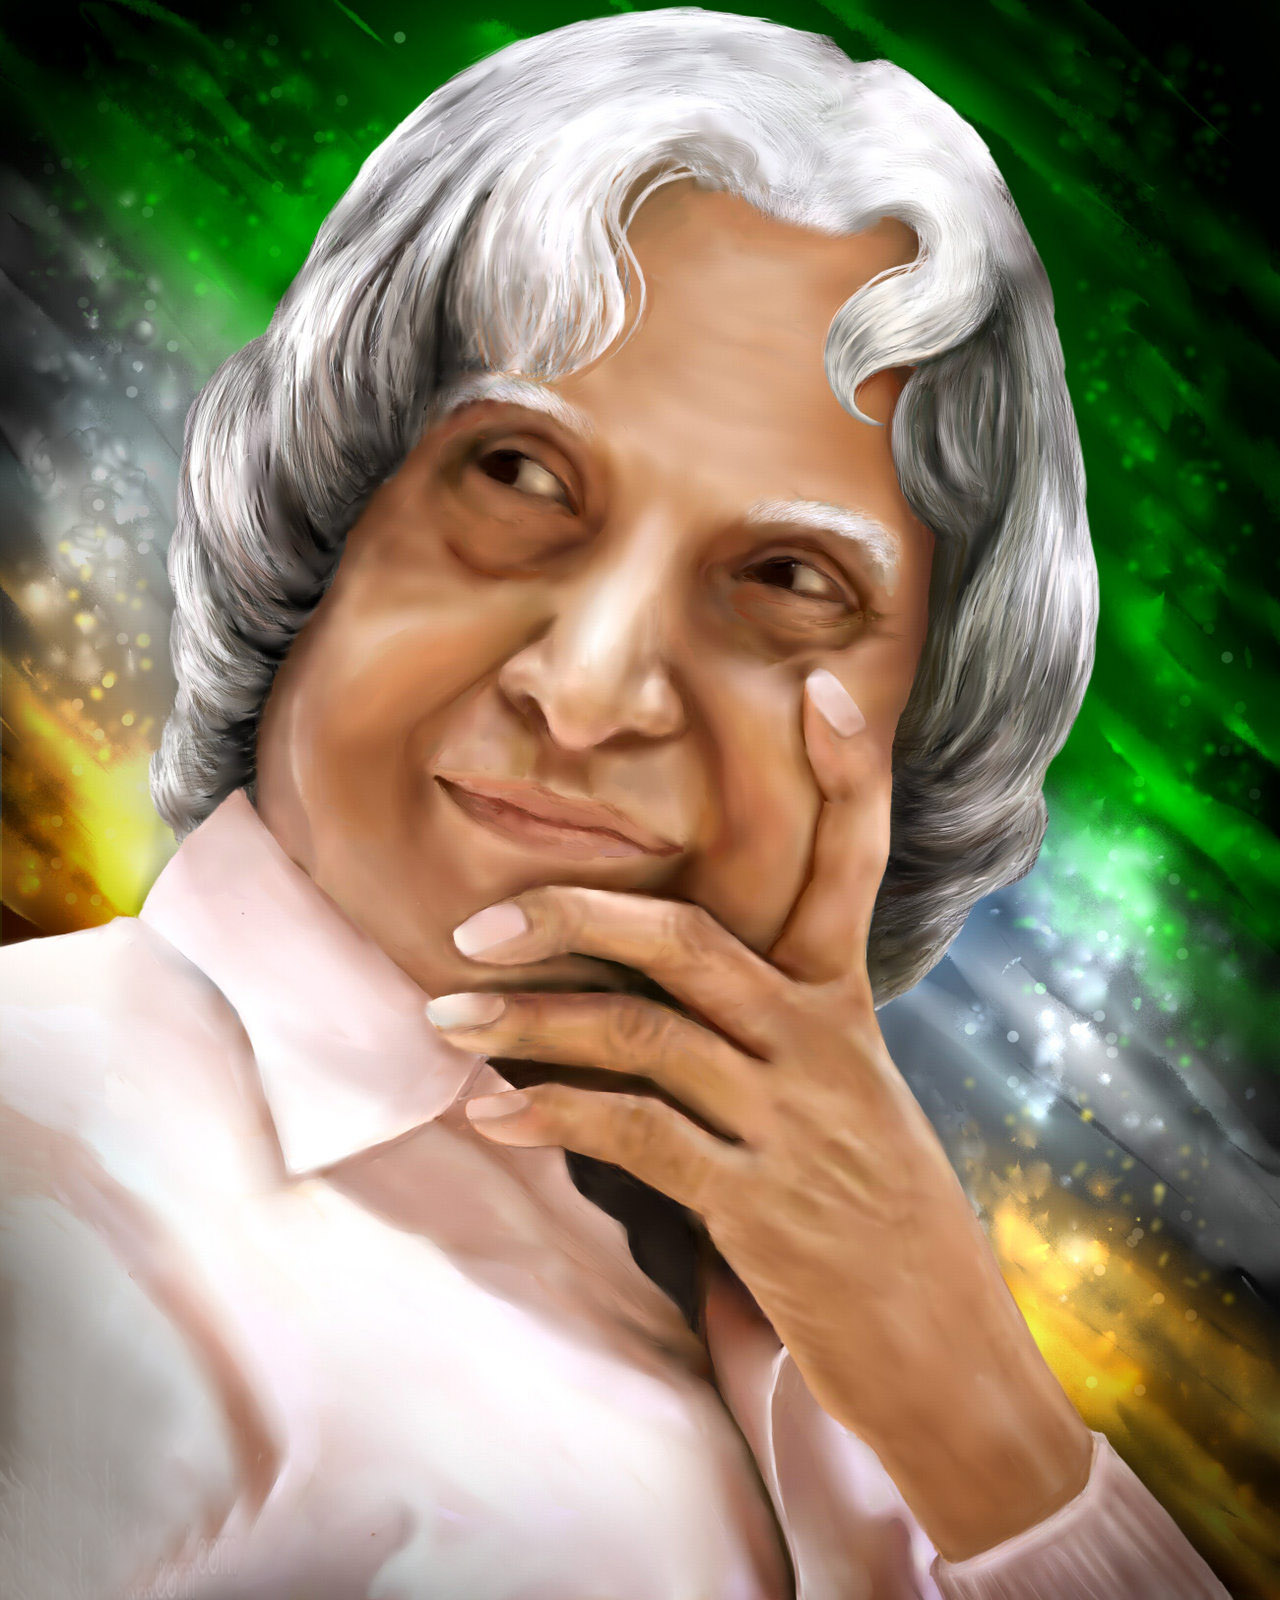 Dr Abdul Kalam Quotes Wallpapers Famous Motivational And Inspiring Quotes Of Abdul Kalam